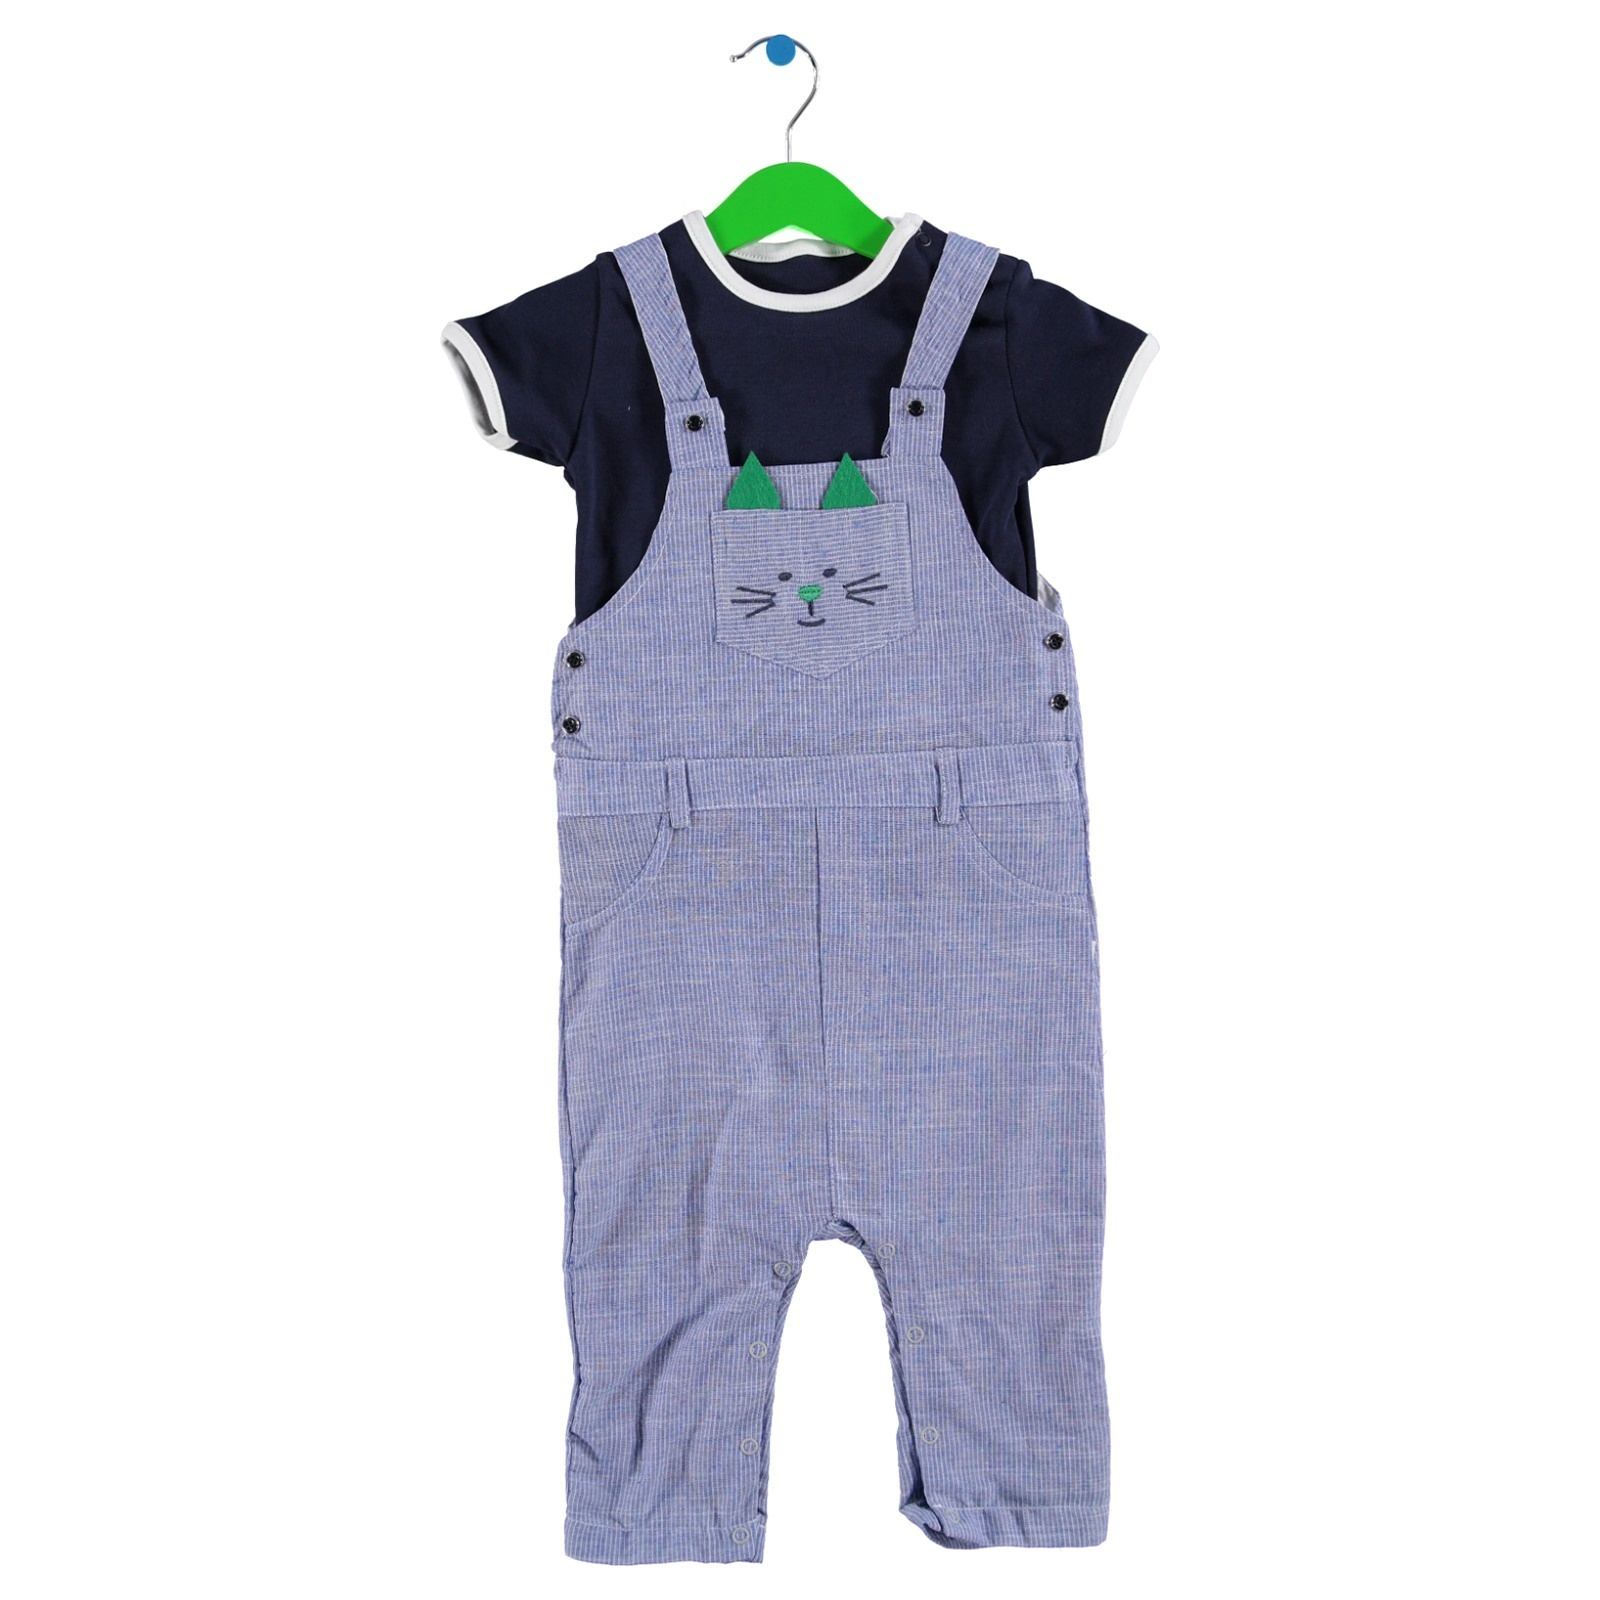 Ebebek BabyZ Baby Kitty Embroidered Short Dungarees Turtleneck Tshirt Set